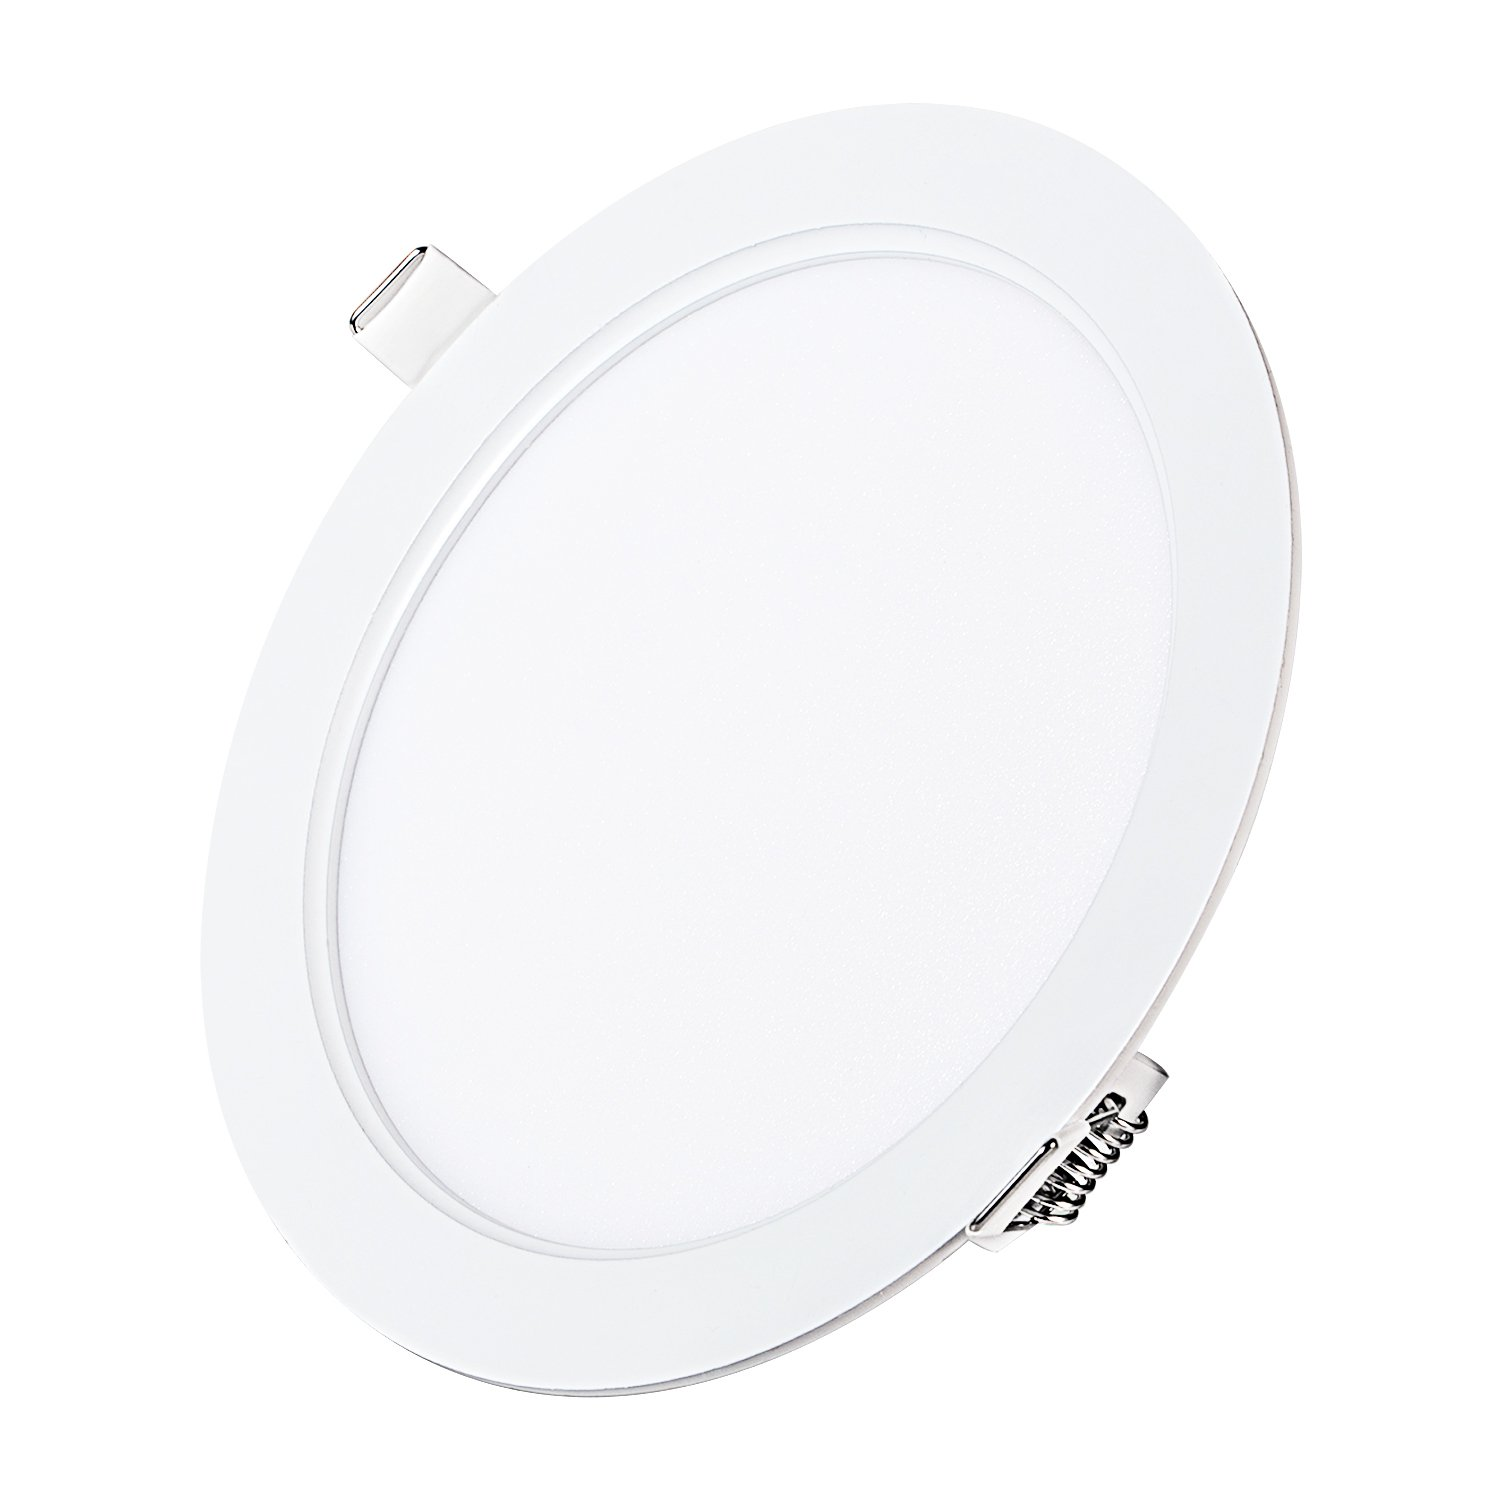 9W 5'' Dimmable LED Recessed Panel Light,Ultra-Thin Round LED Panel Light,4000K Neutral White,720lm,LED Recessed Ceiling Downlight Fixture,110V LED Driver Included